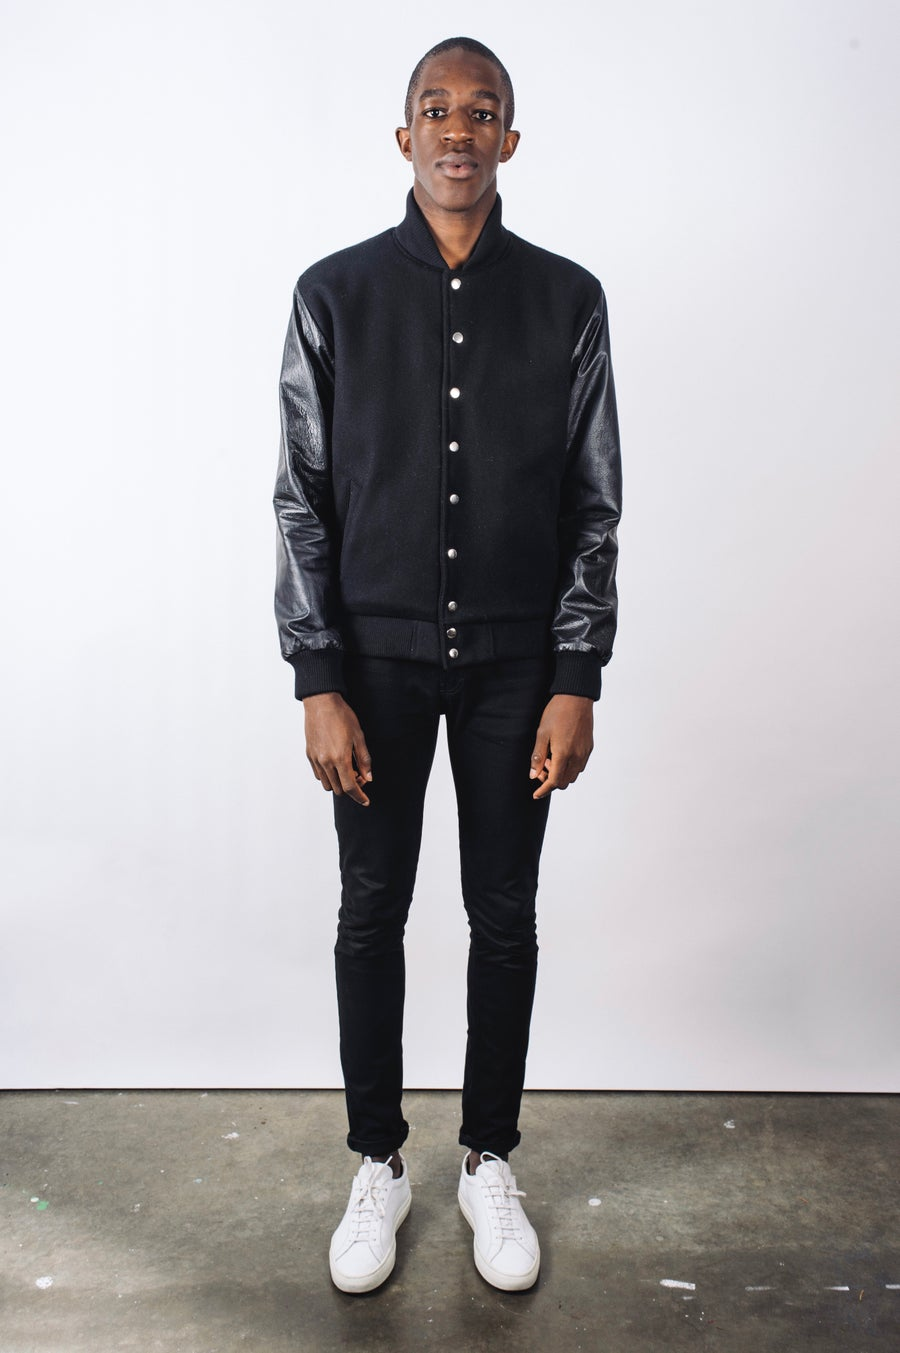 Image of Black Sleeved Cashmere/Wool Varsity